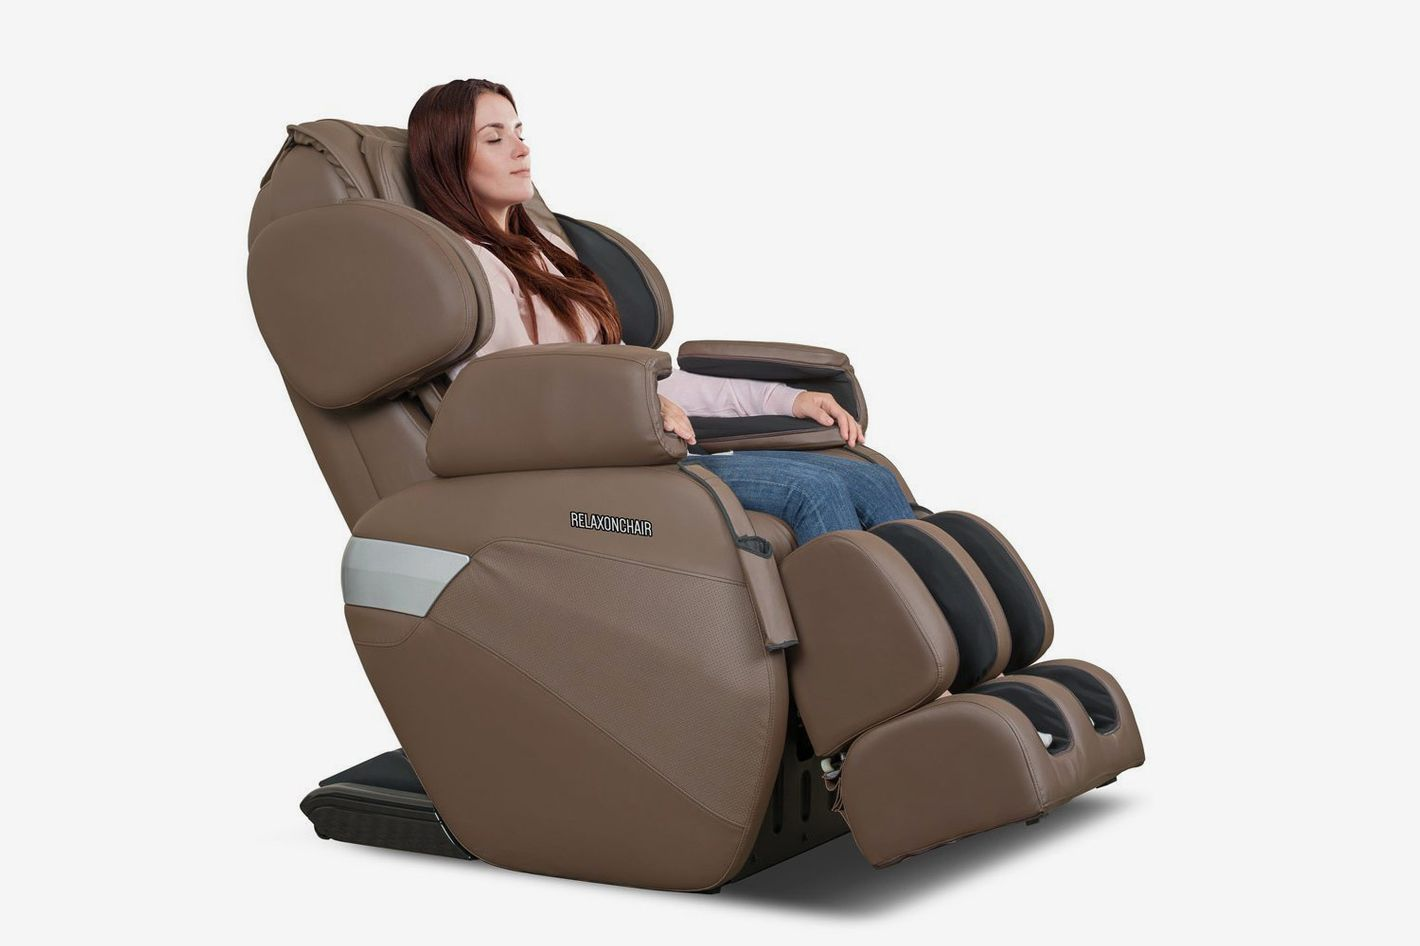 A brown massage recliner with a brunette woman sitting, eyes closed.